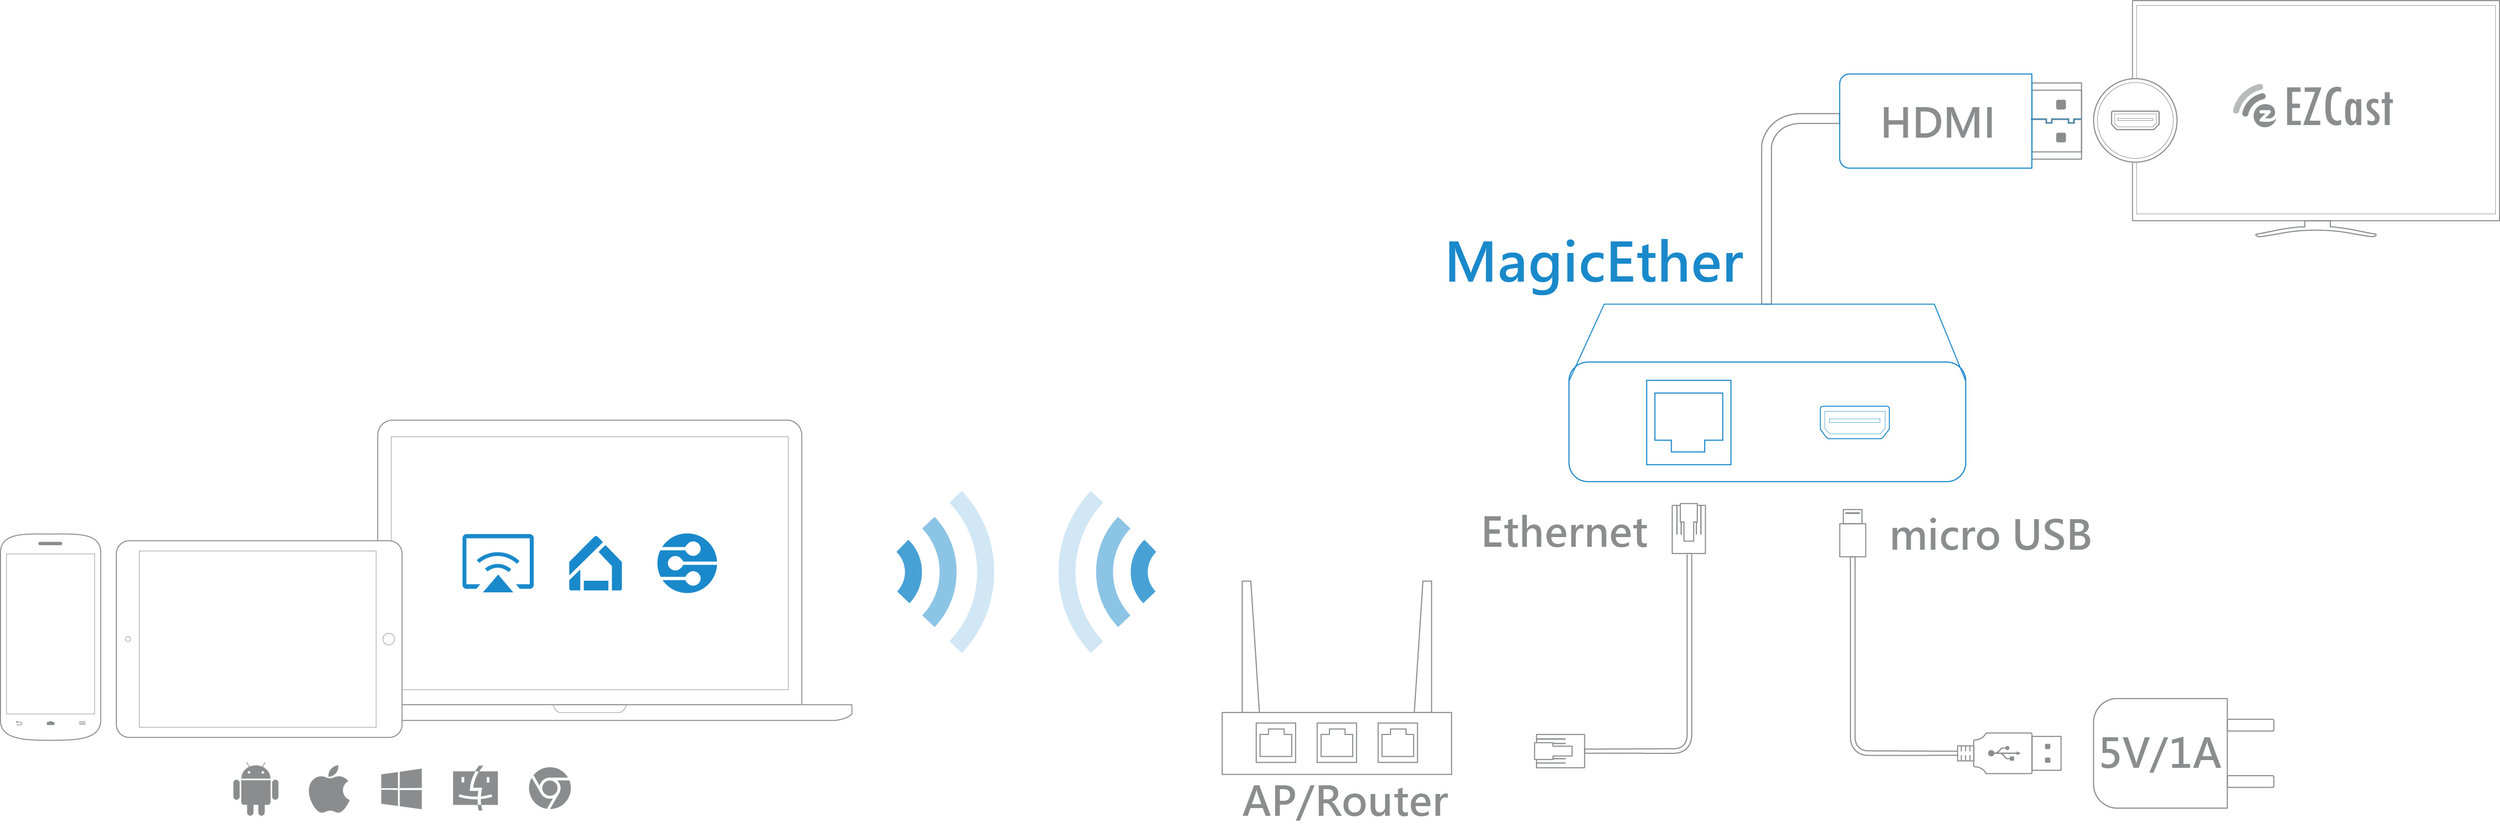 How to connect MagicEther to router and HDTV